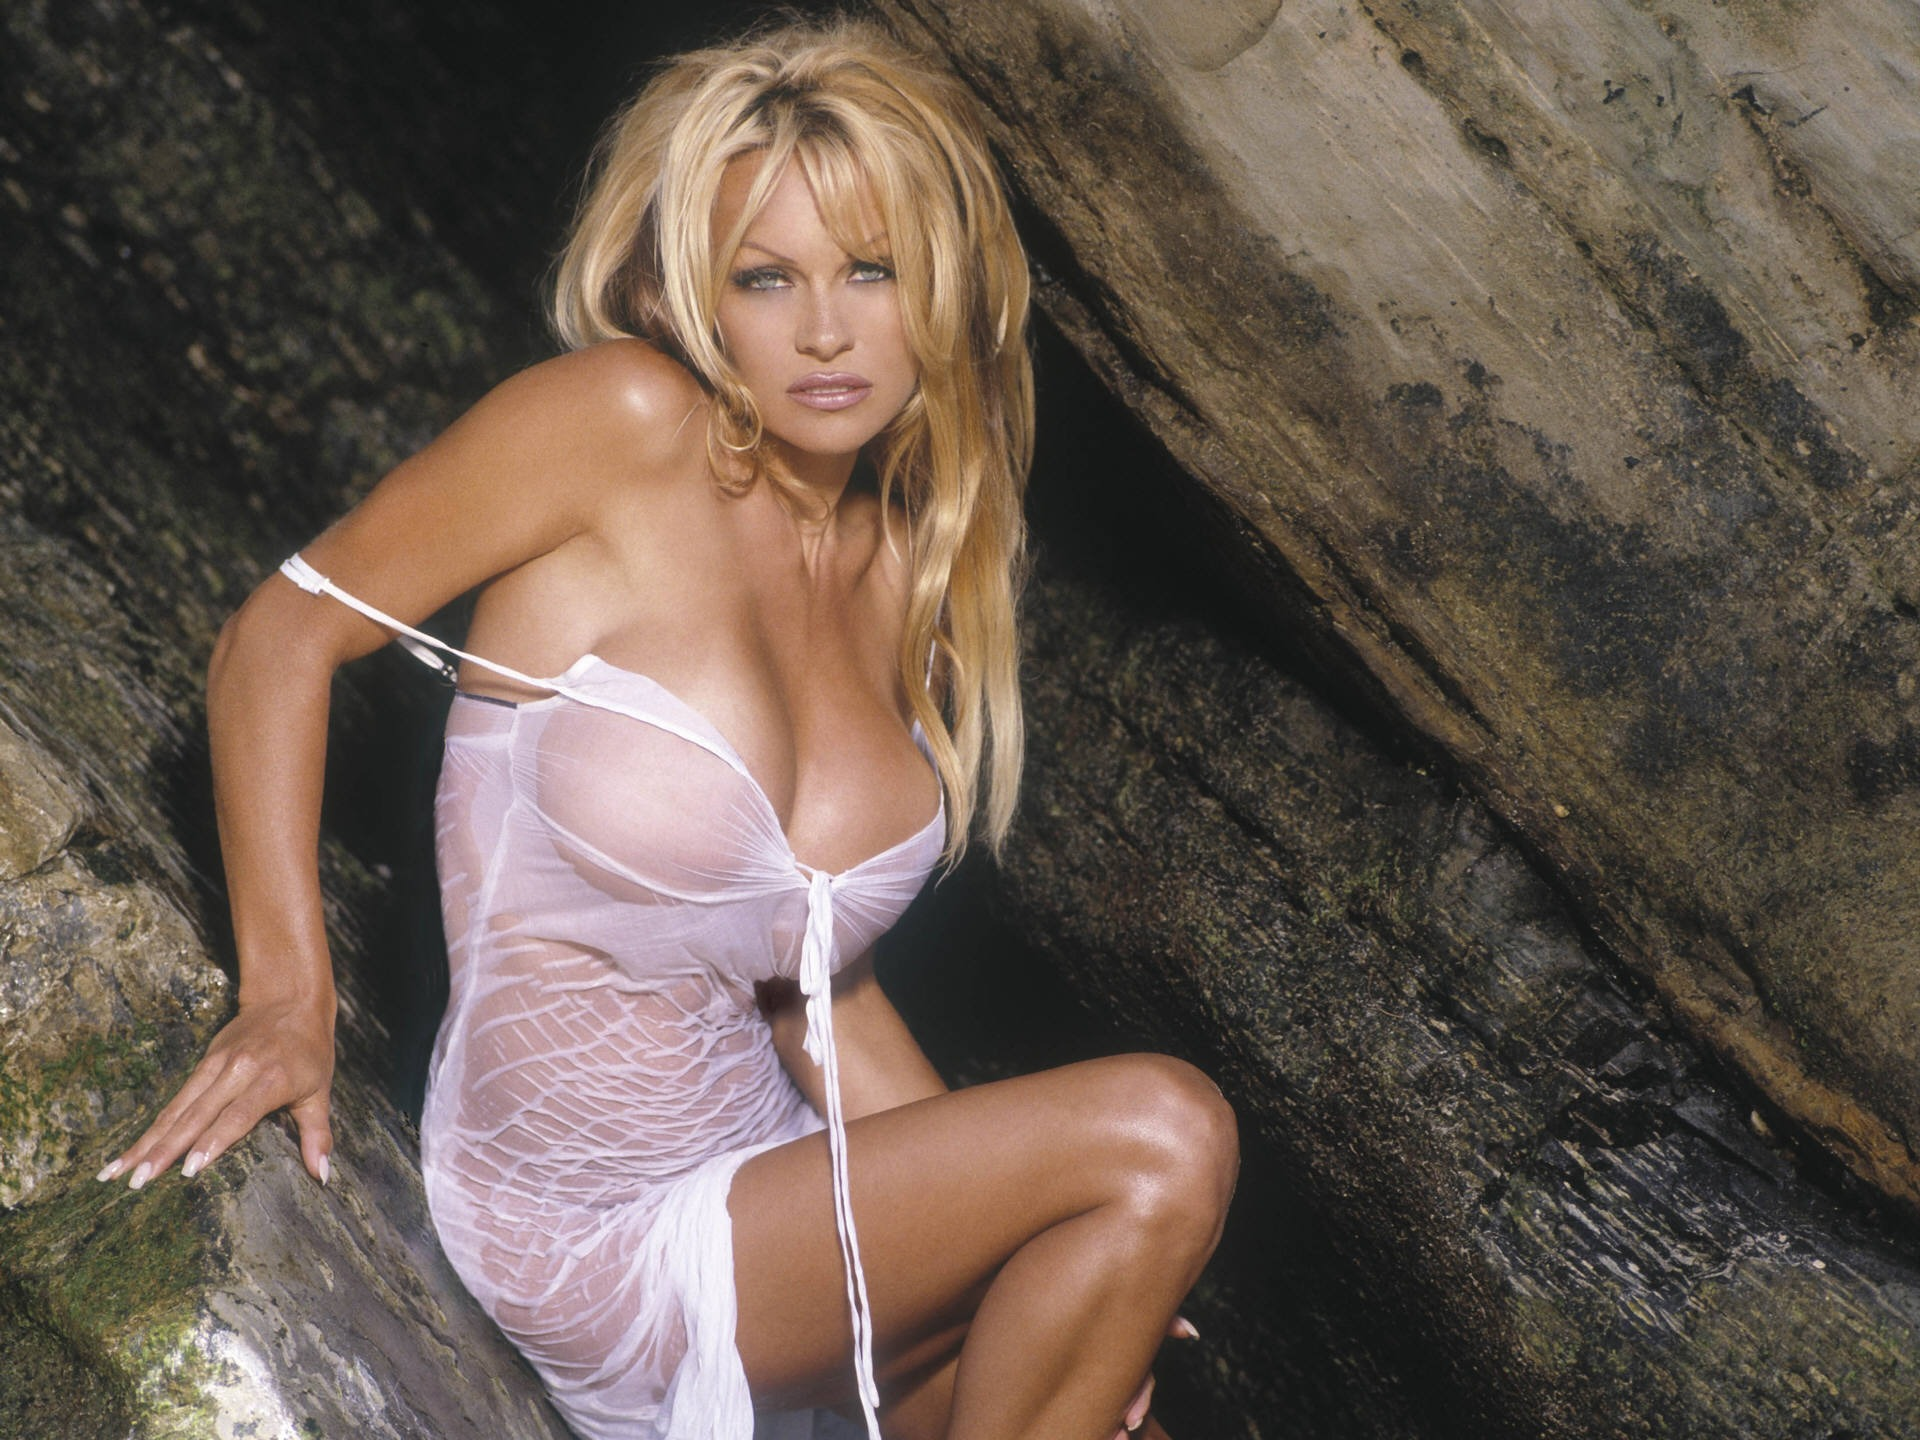 The Hottest Pamela Anderson Photos Around The Net - 12thBlog